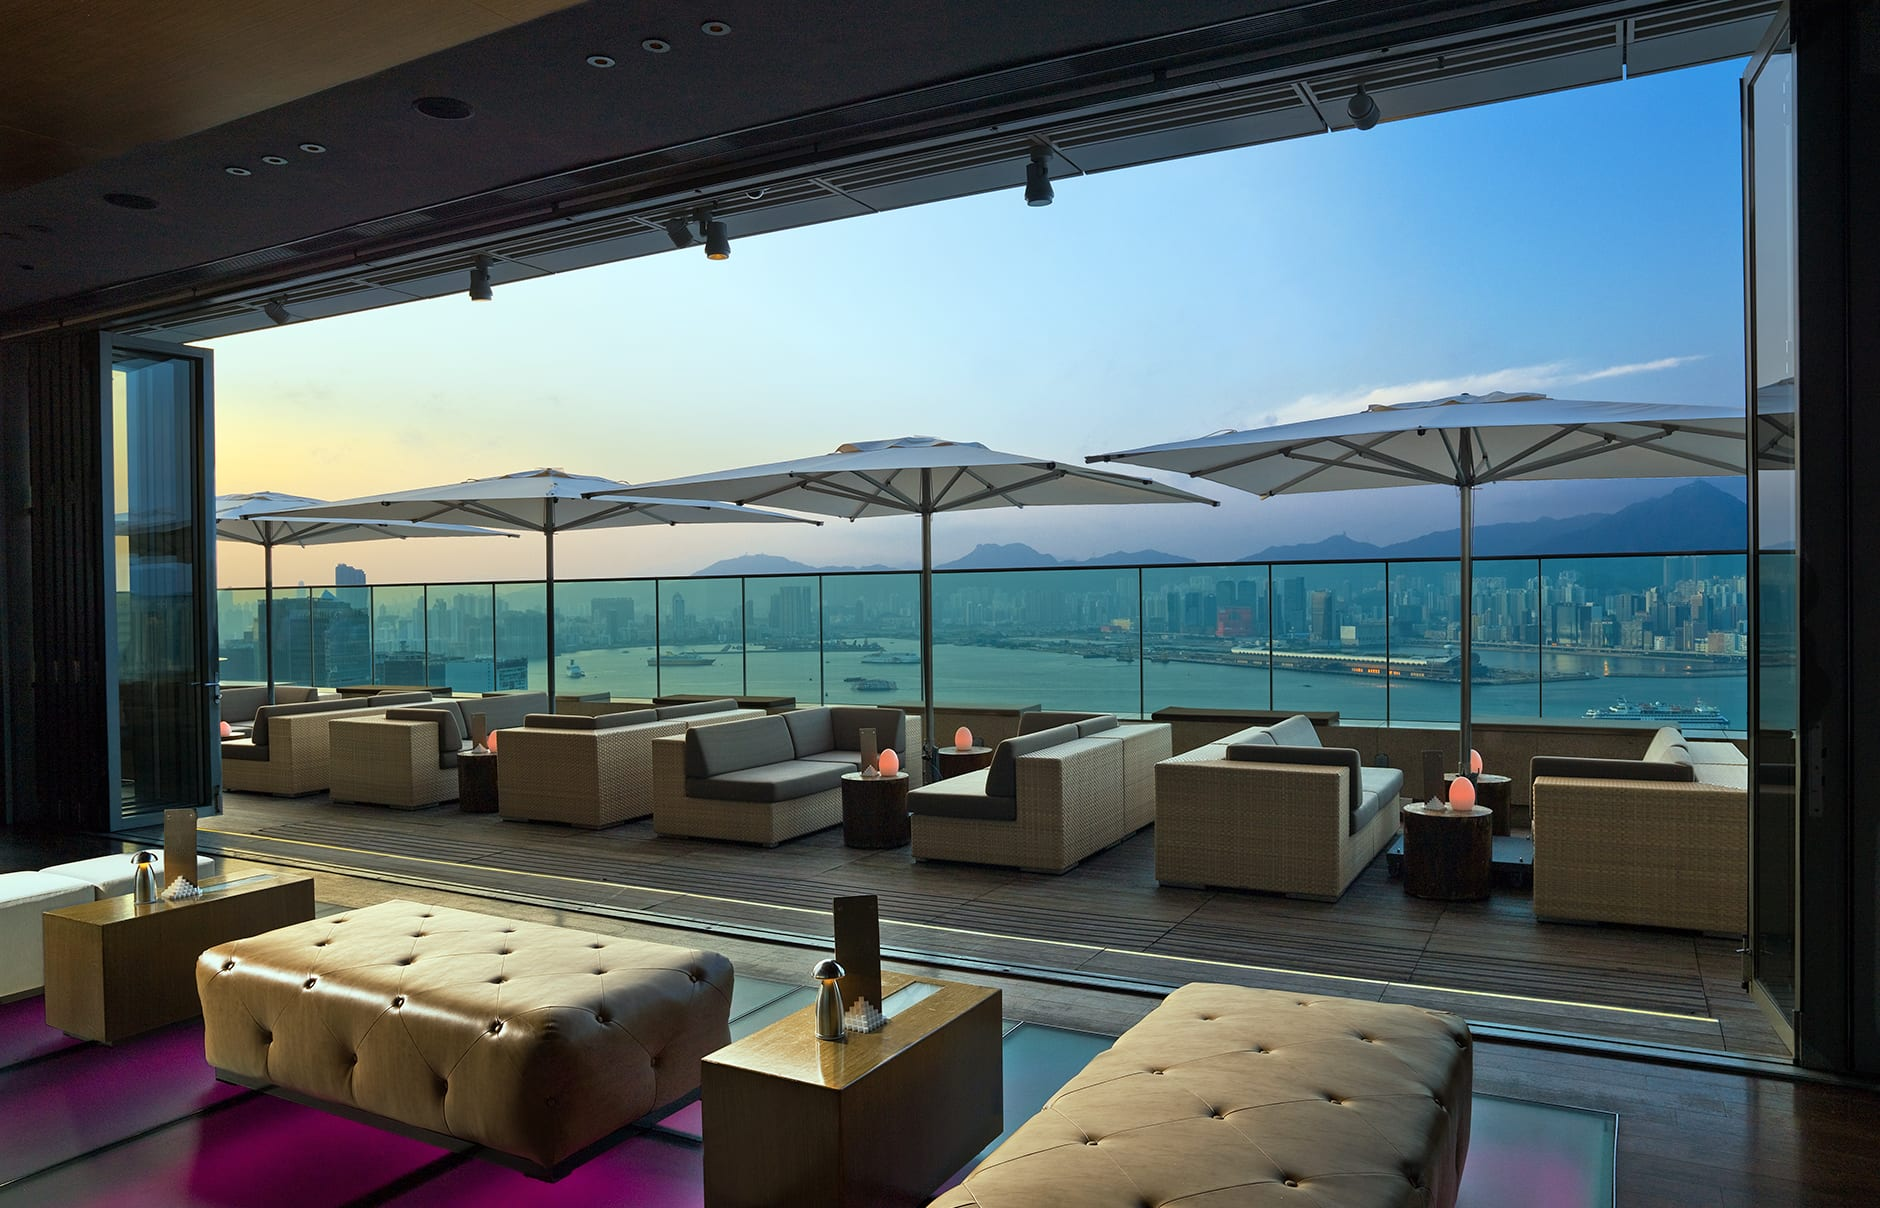 East hong kong luxury hotels travelplusstyle for Hotel design ce